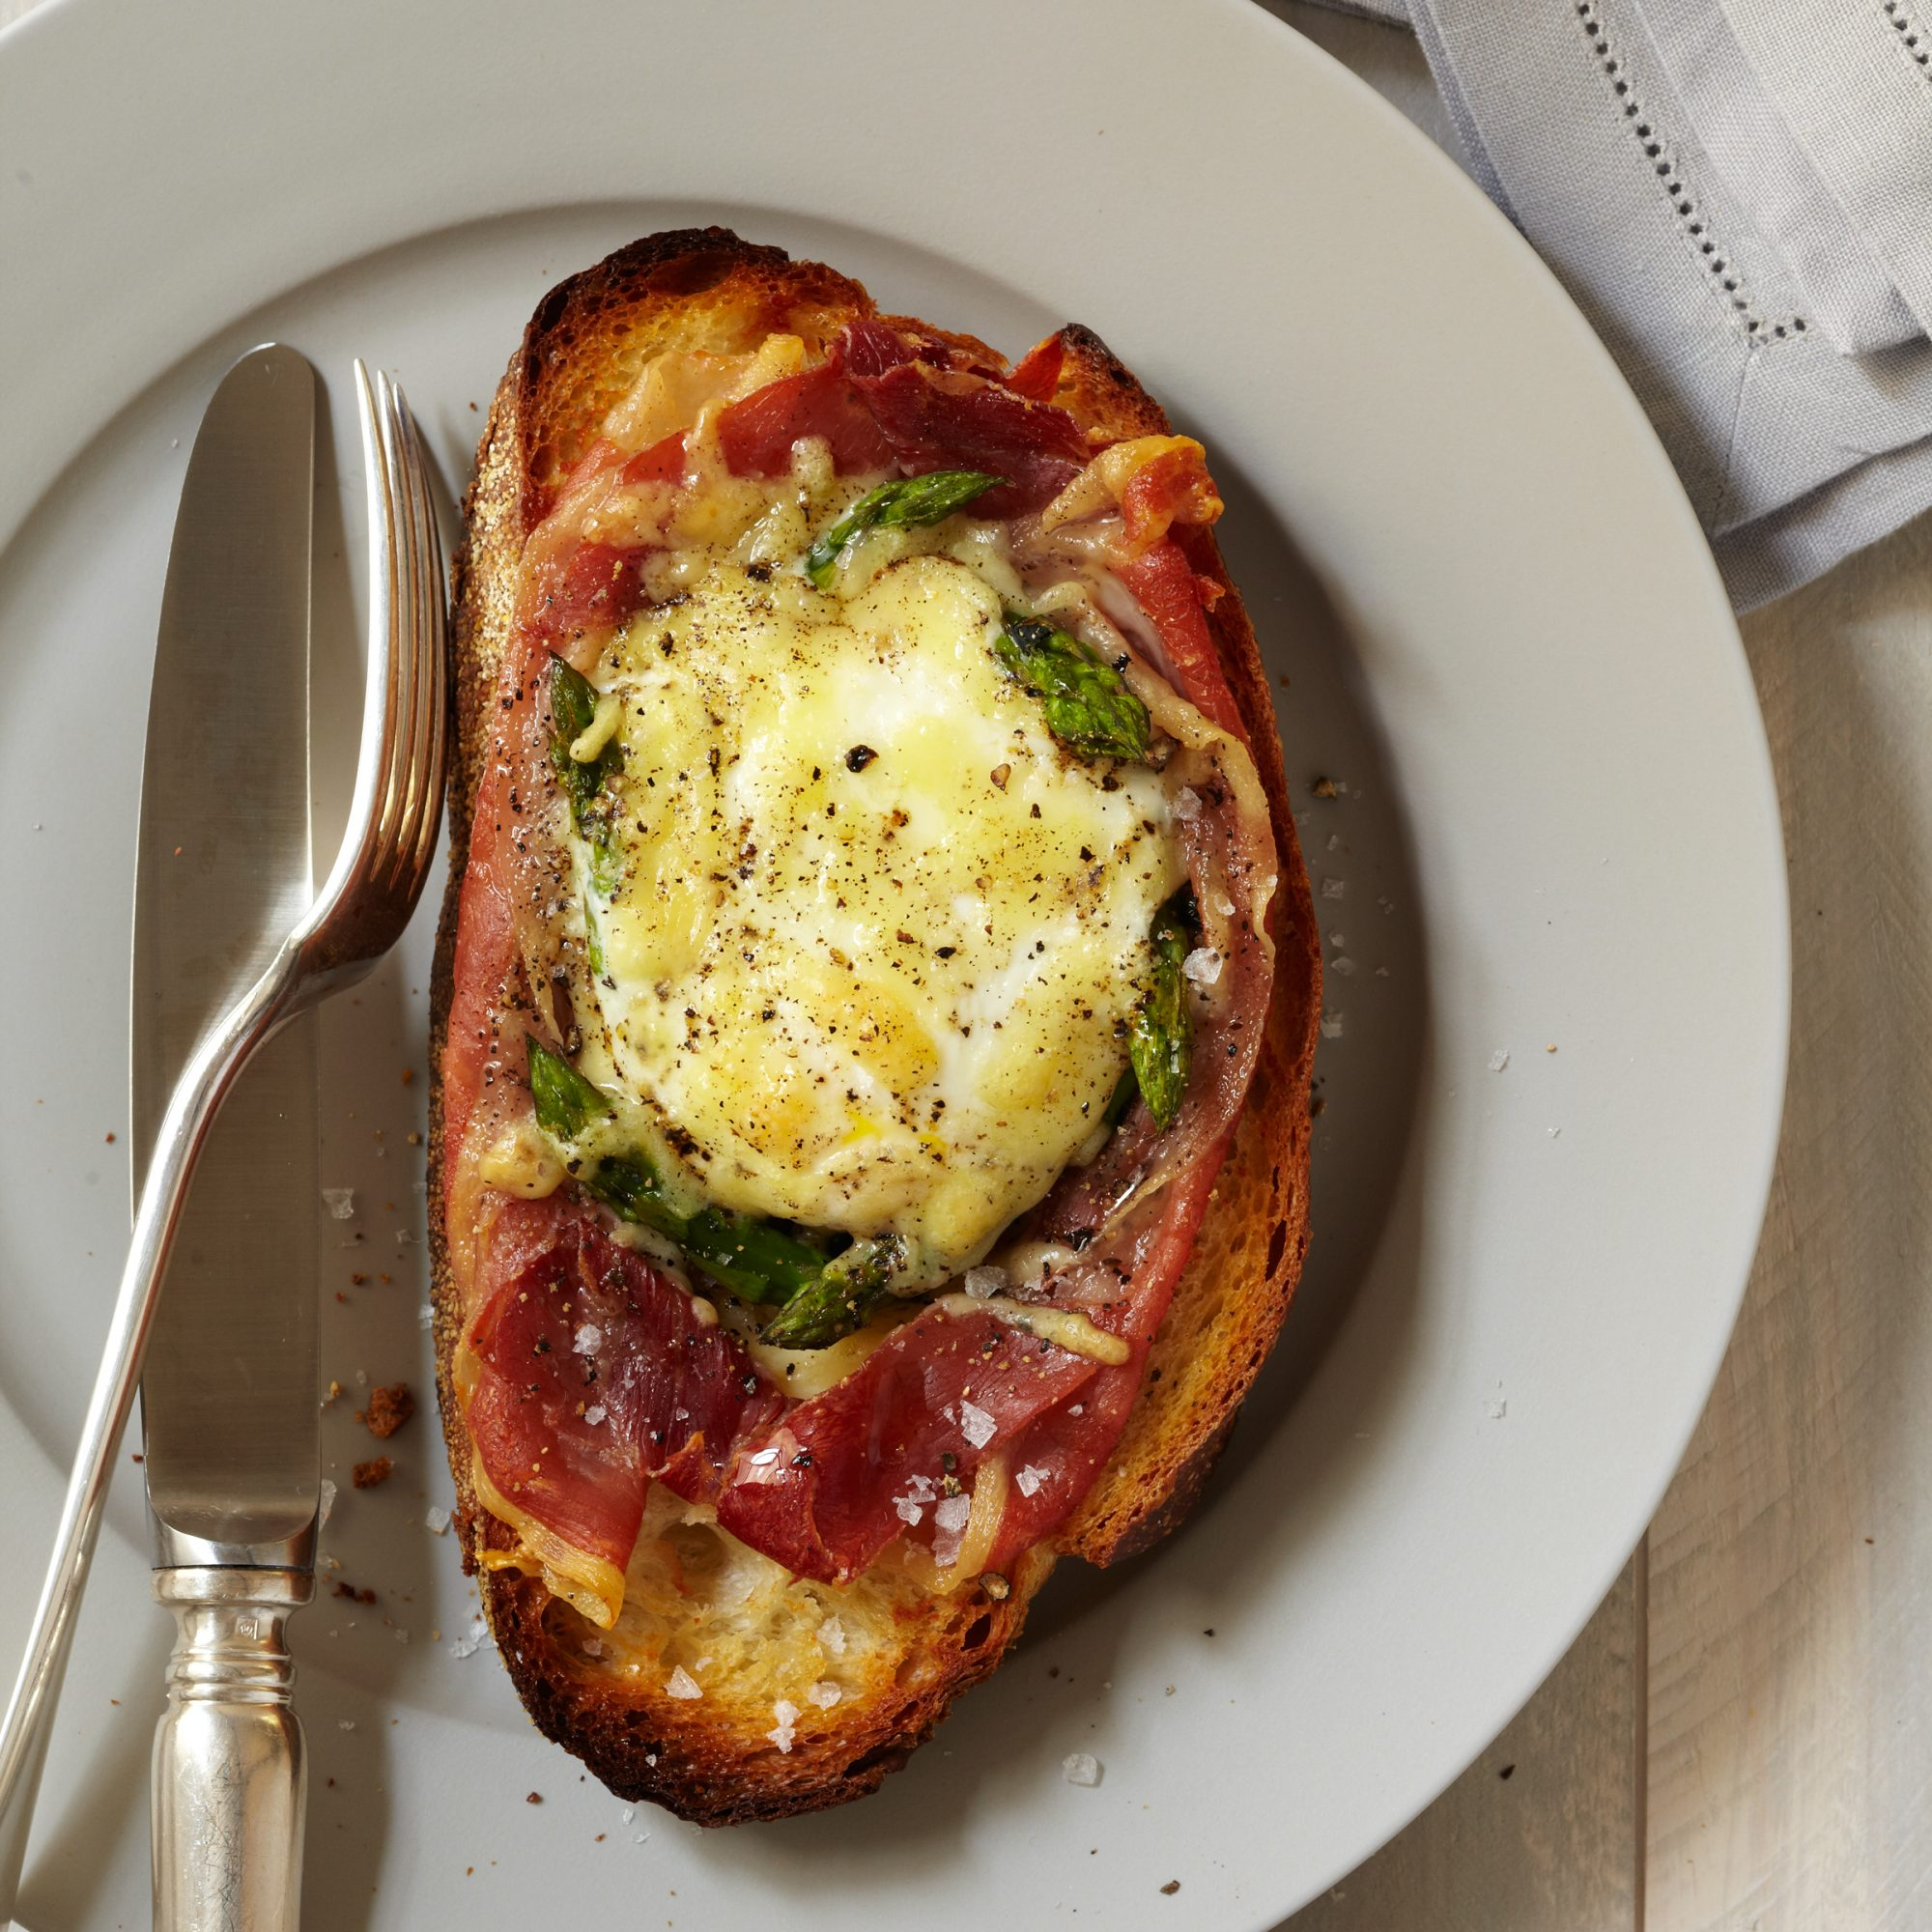 original-baked-eggs-qfs-XL.jpg